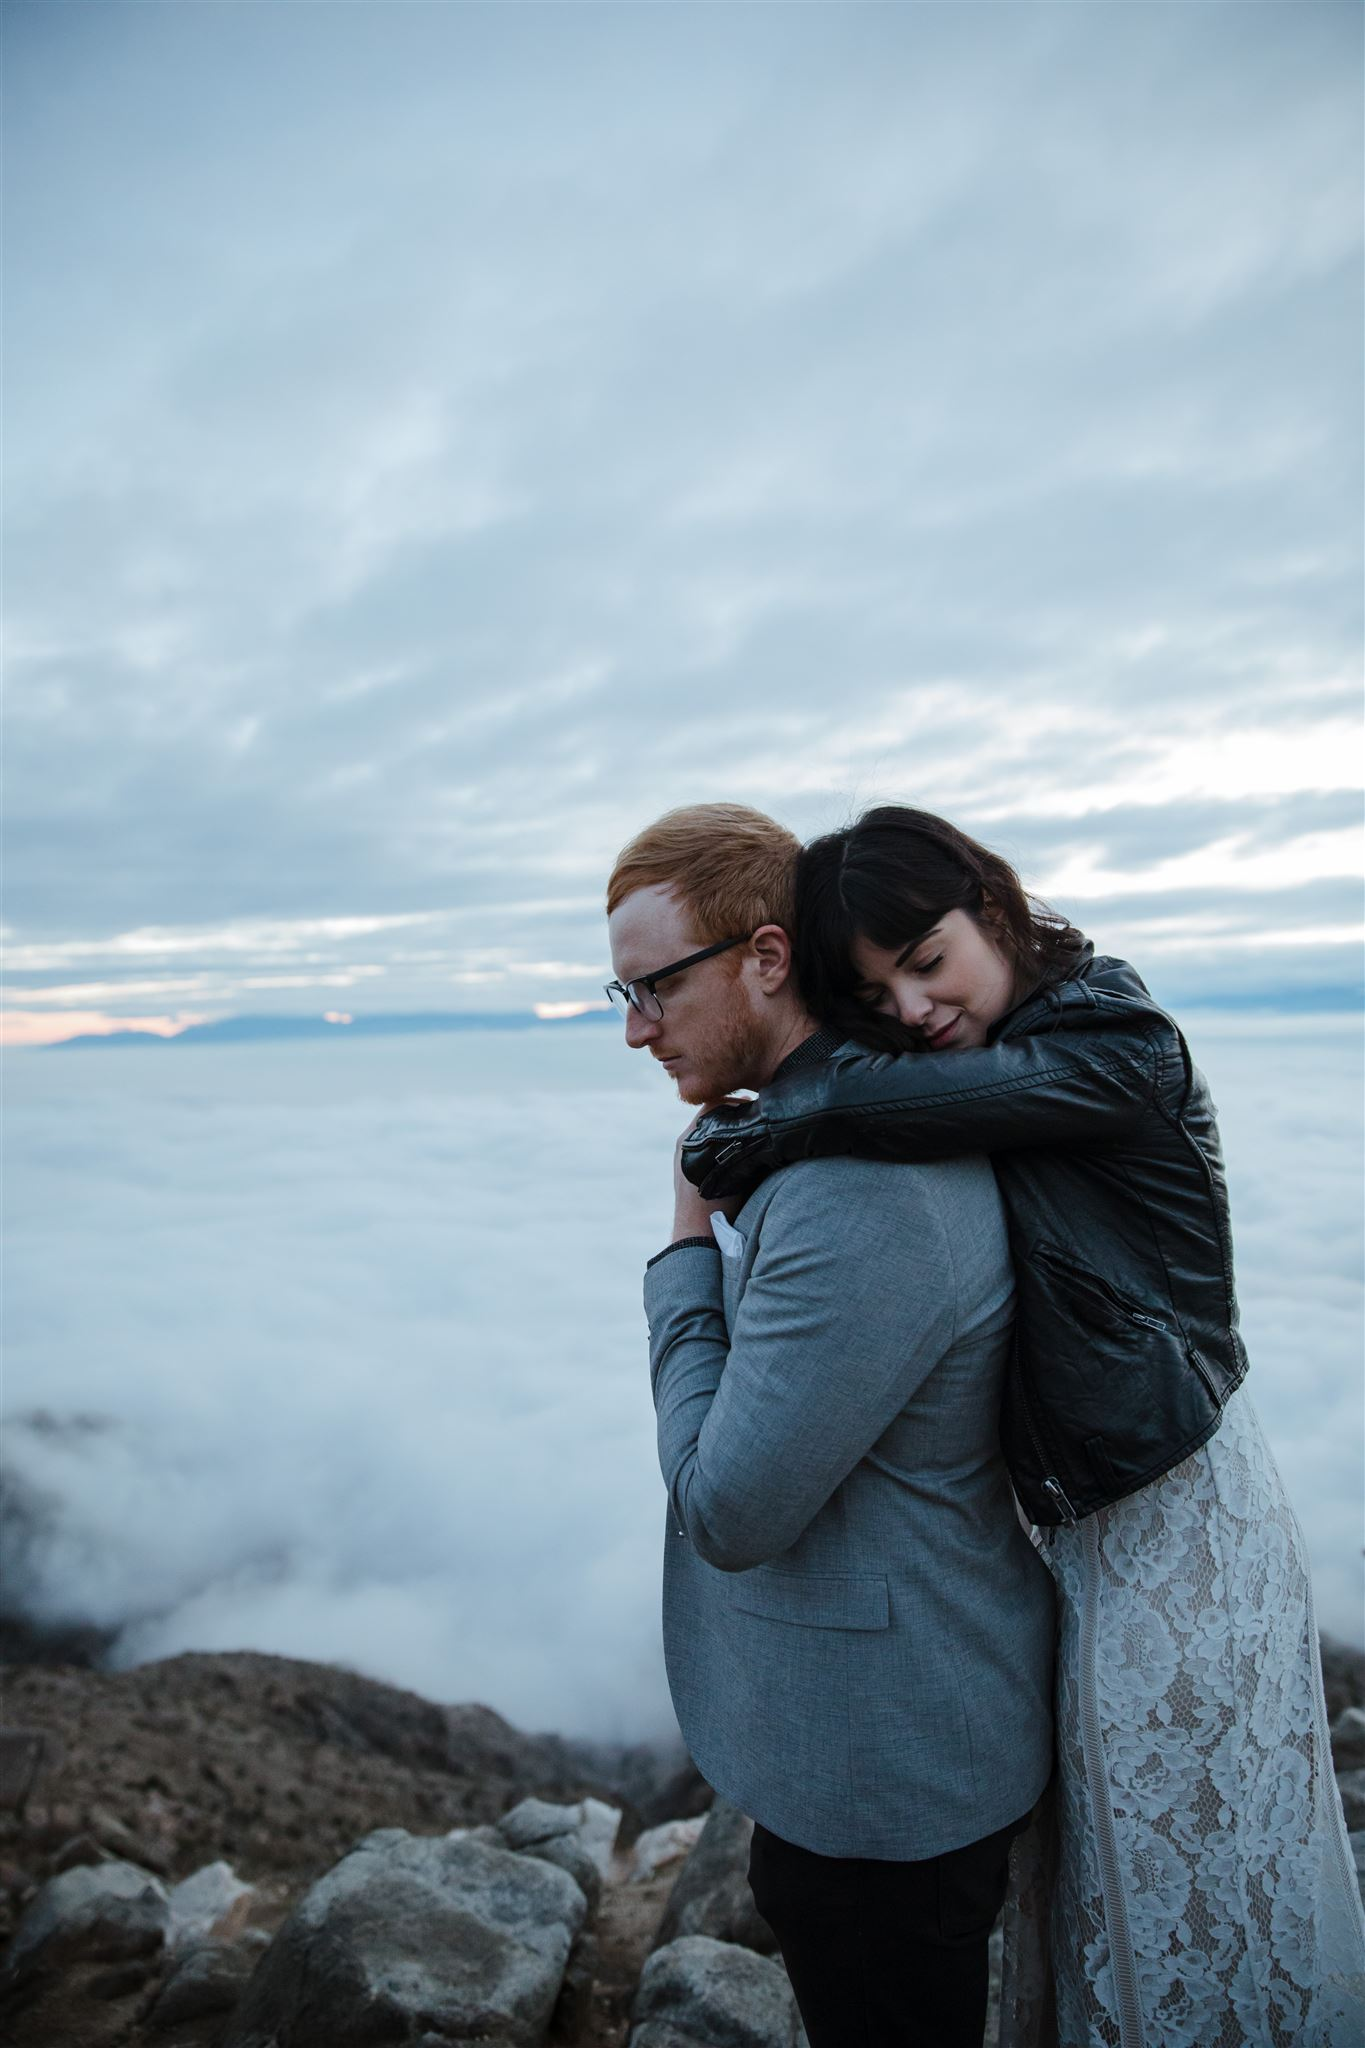 Joshua Tree CA Elopement Wedding  Photographer May Iosotaluno 06.jpg